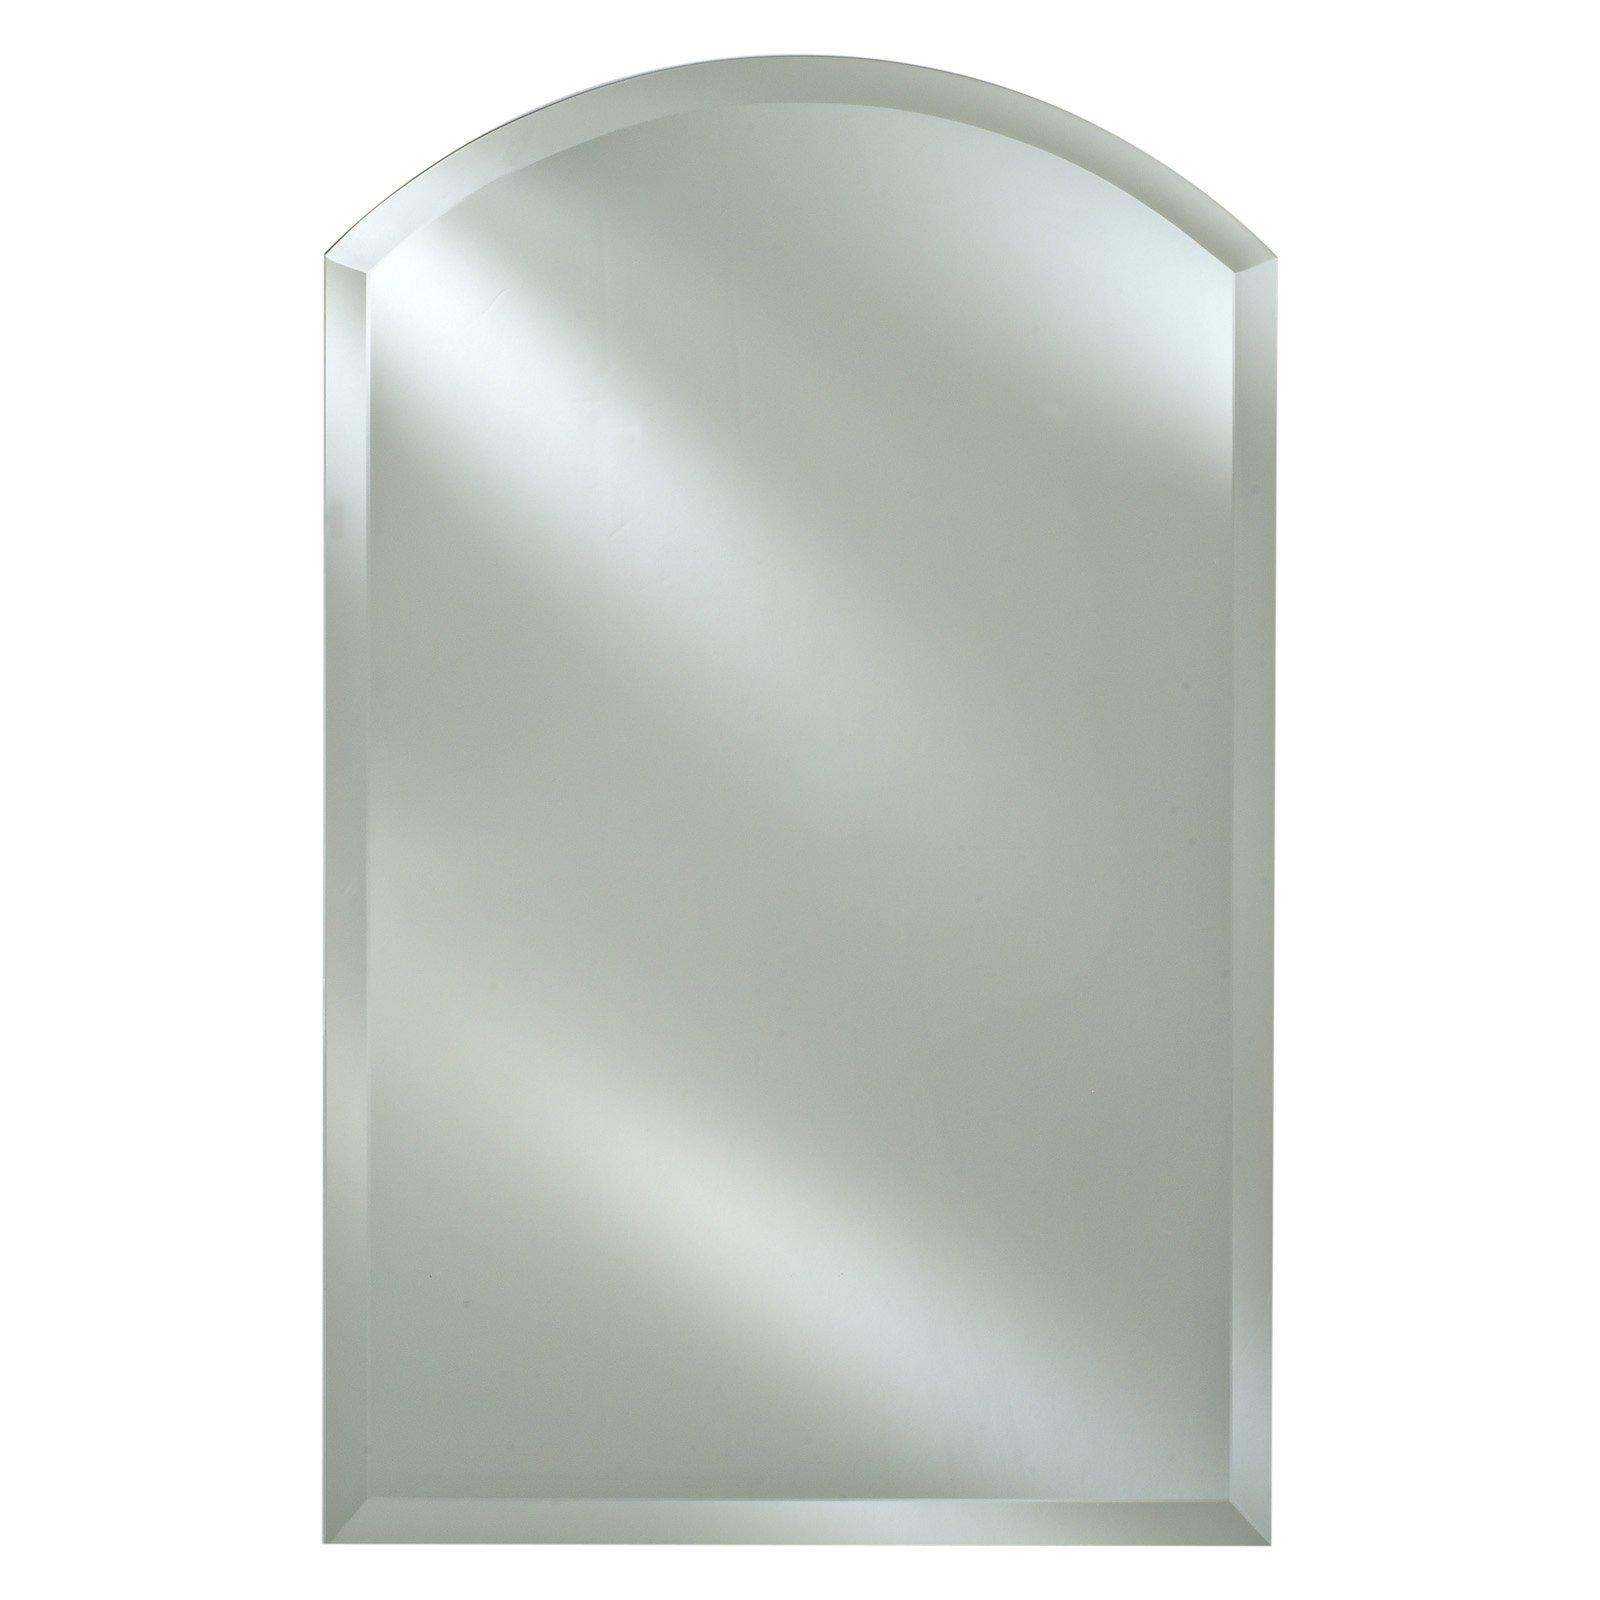 Radiance Frameless Arch Vanity / Wall Mirror | Hayneedle For Frameless Arched Mirror (Image 14 of 20)